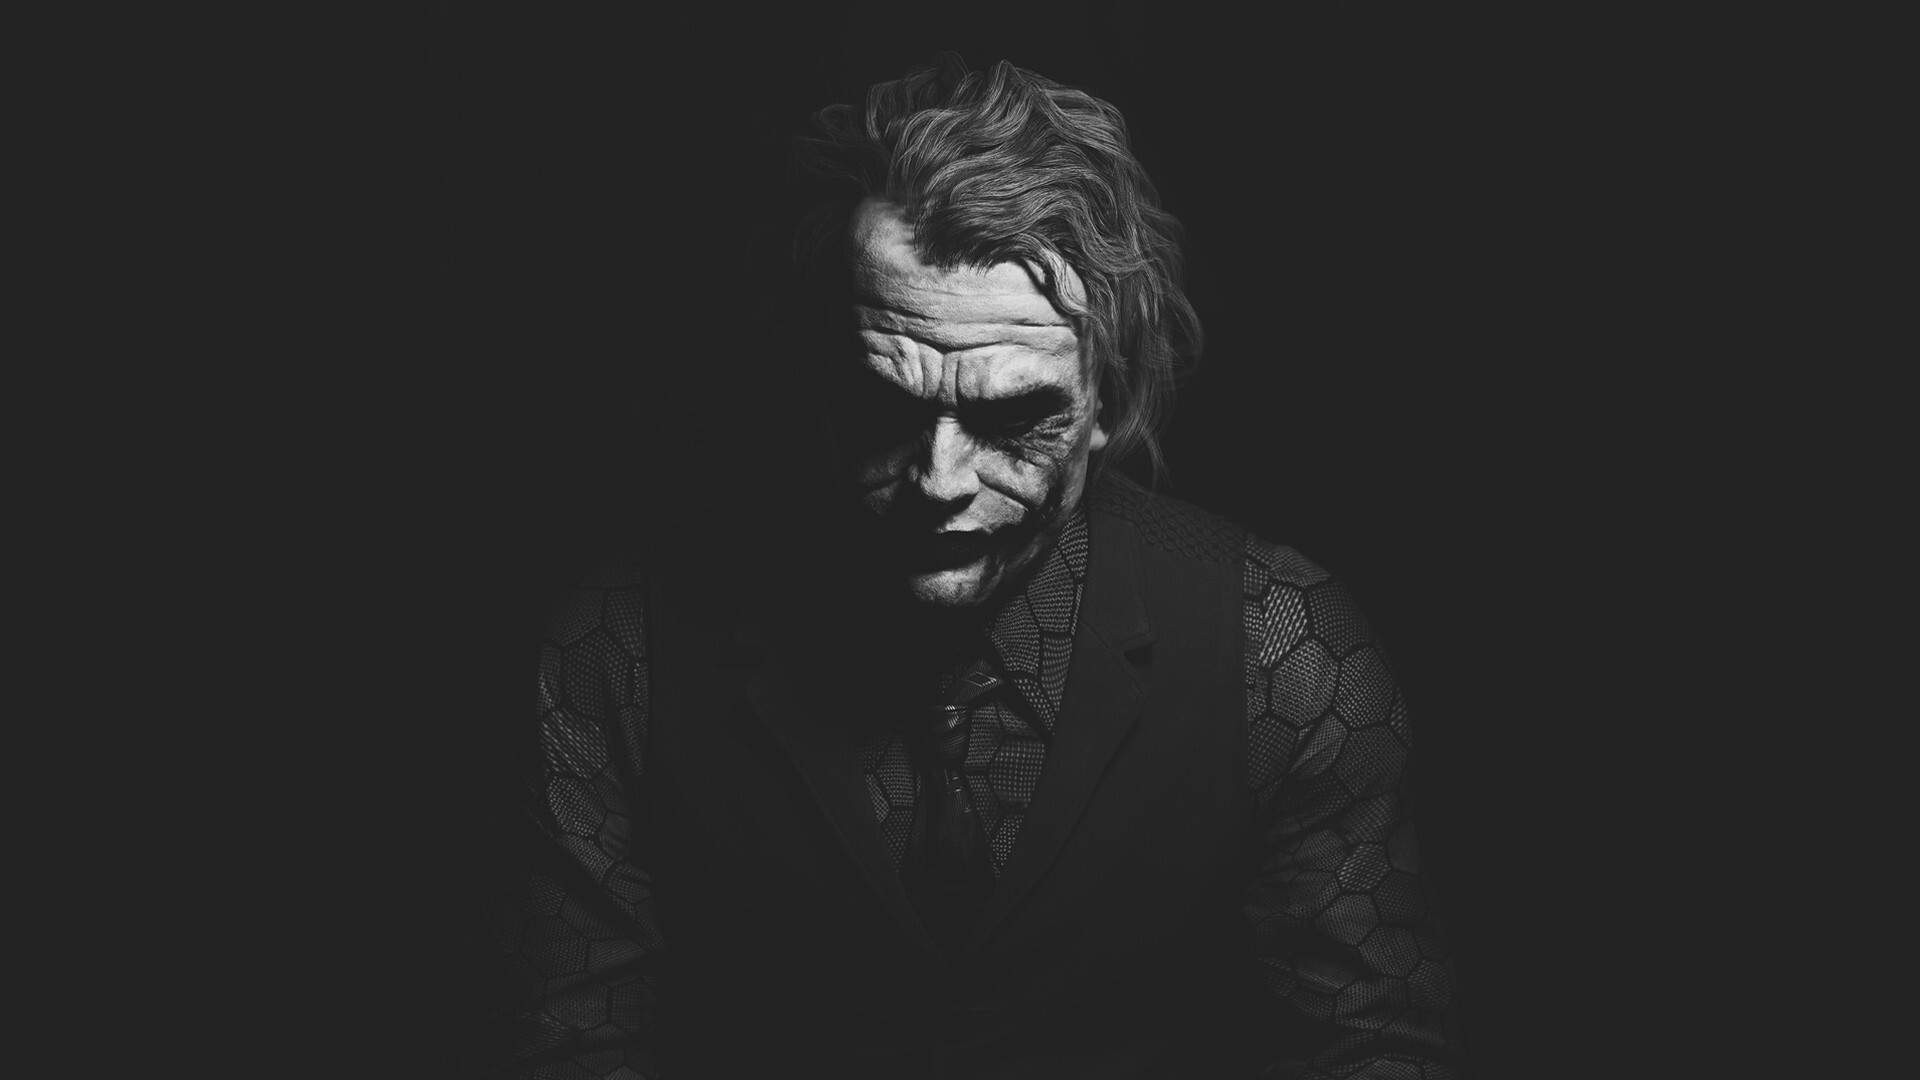 joker wallpaper, joker wallpaper 4k, joker hd wallpaper